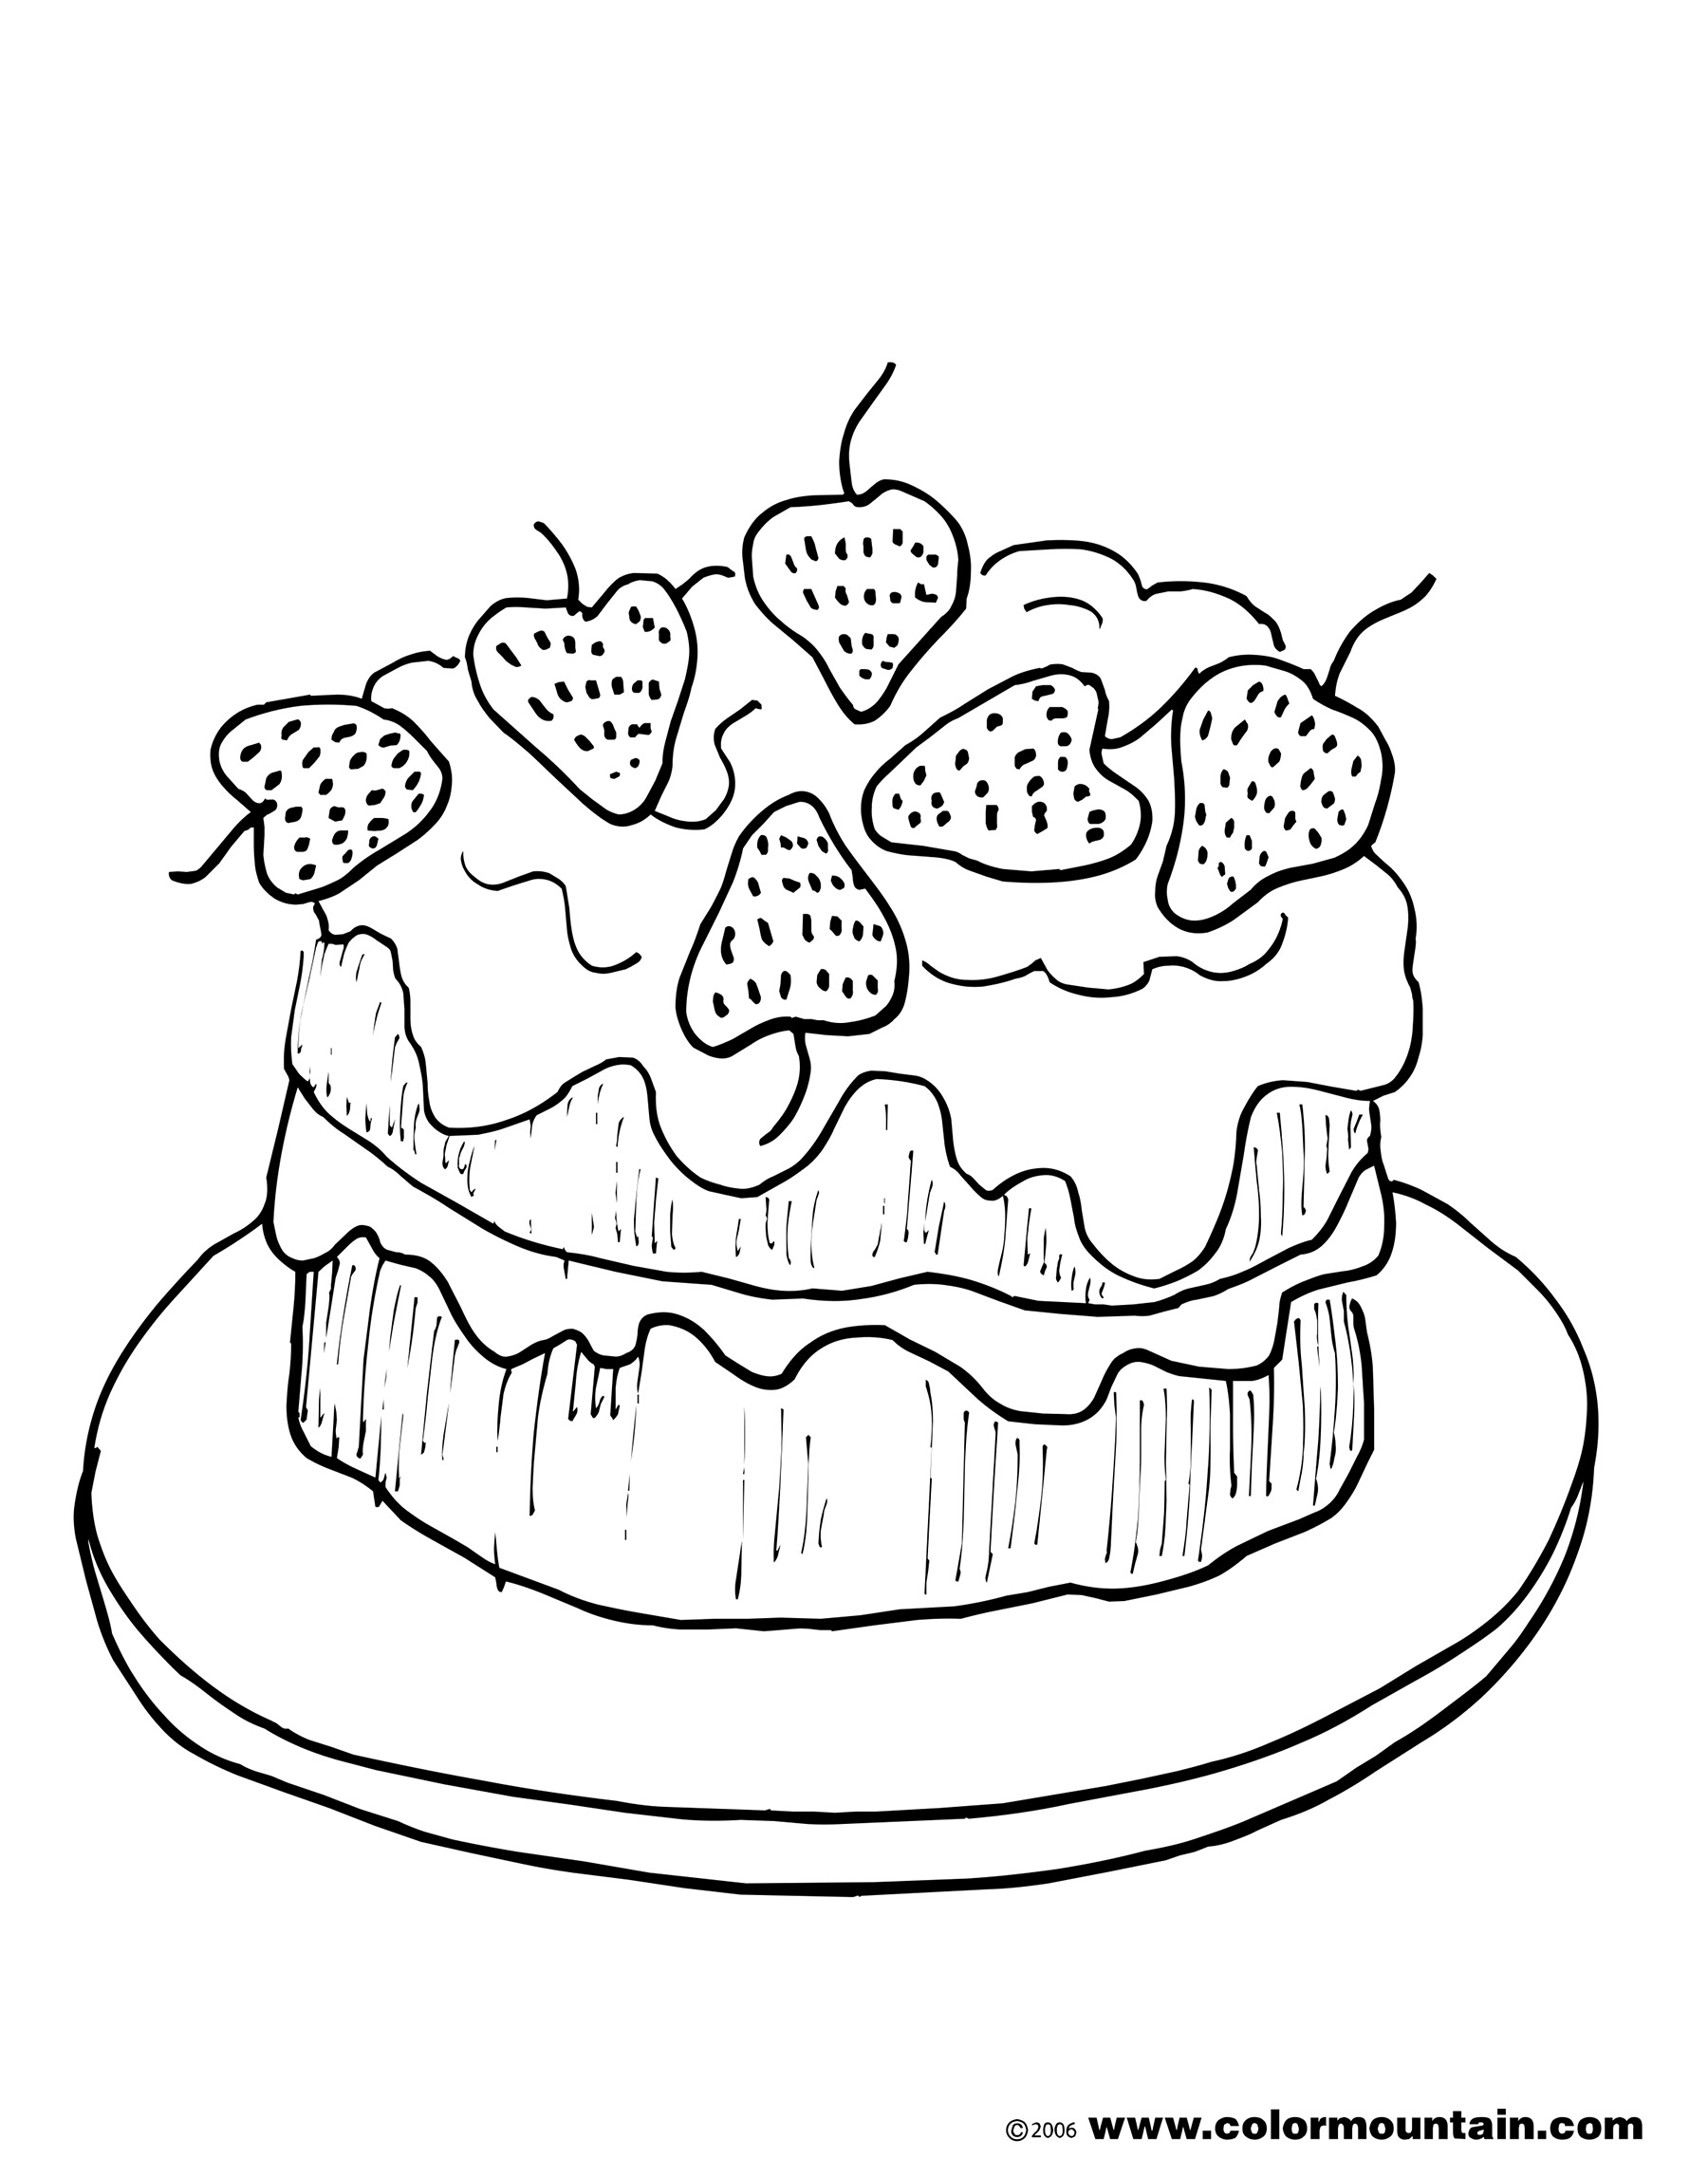 Cake Coloring Pages Free At Getdrawings